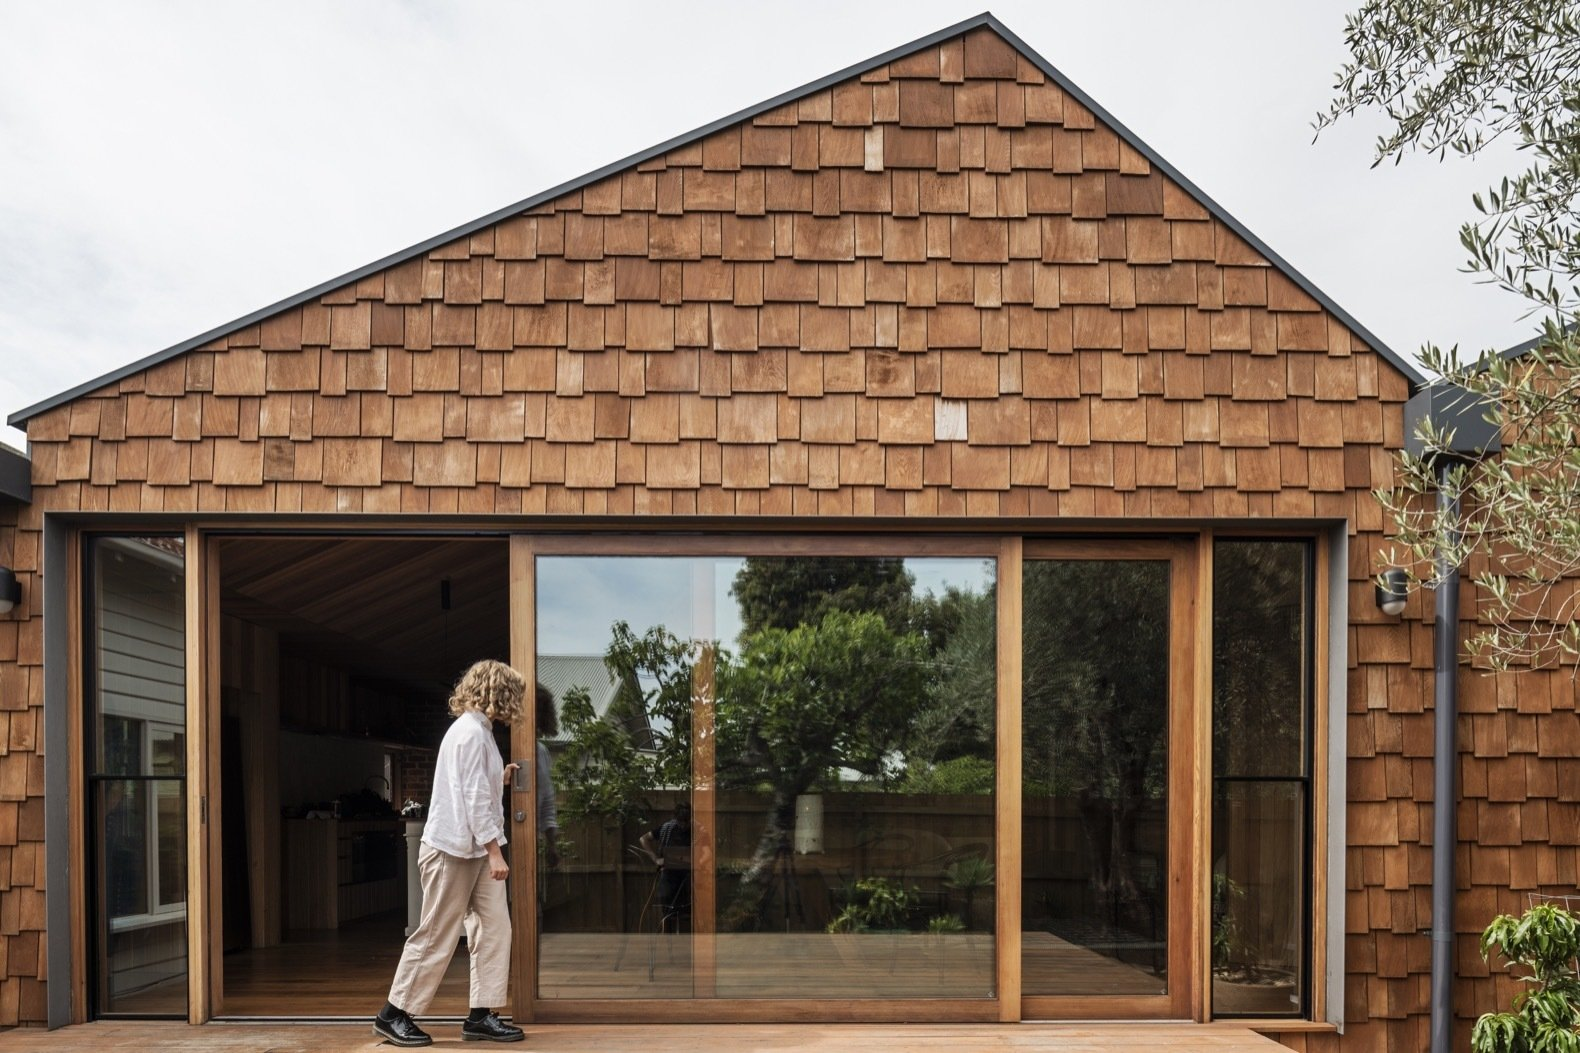 Timber-framed glass sliding doors open up the interior to the outdoors and natural light. Western red cedar shingles and Tasmanian oak shiplap clad the exterior.